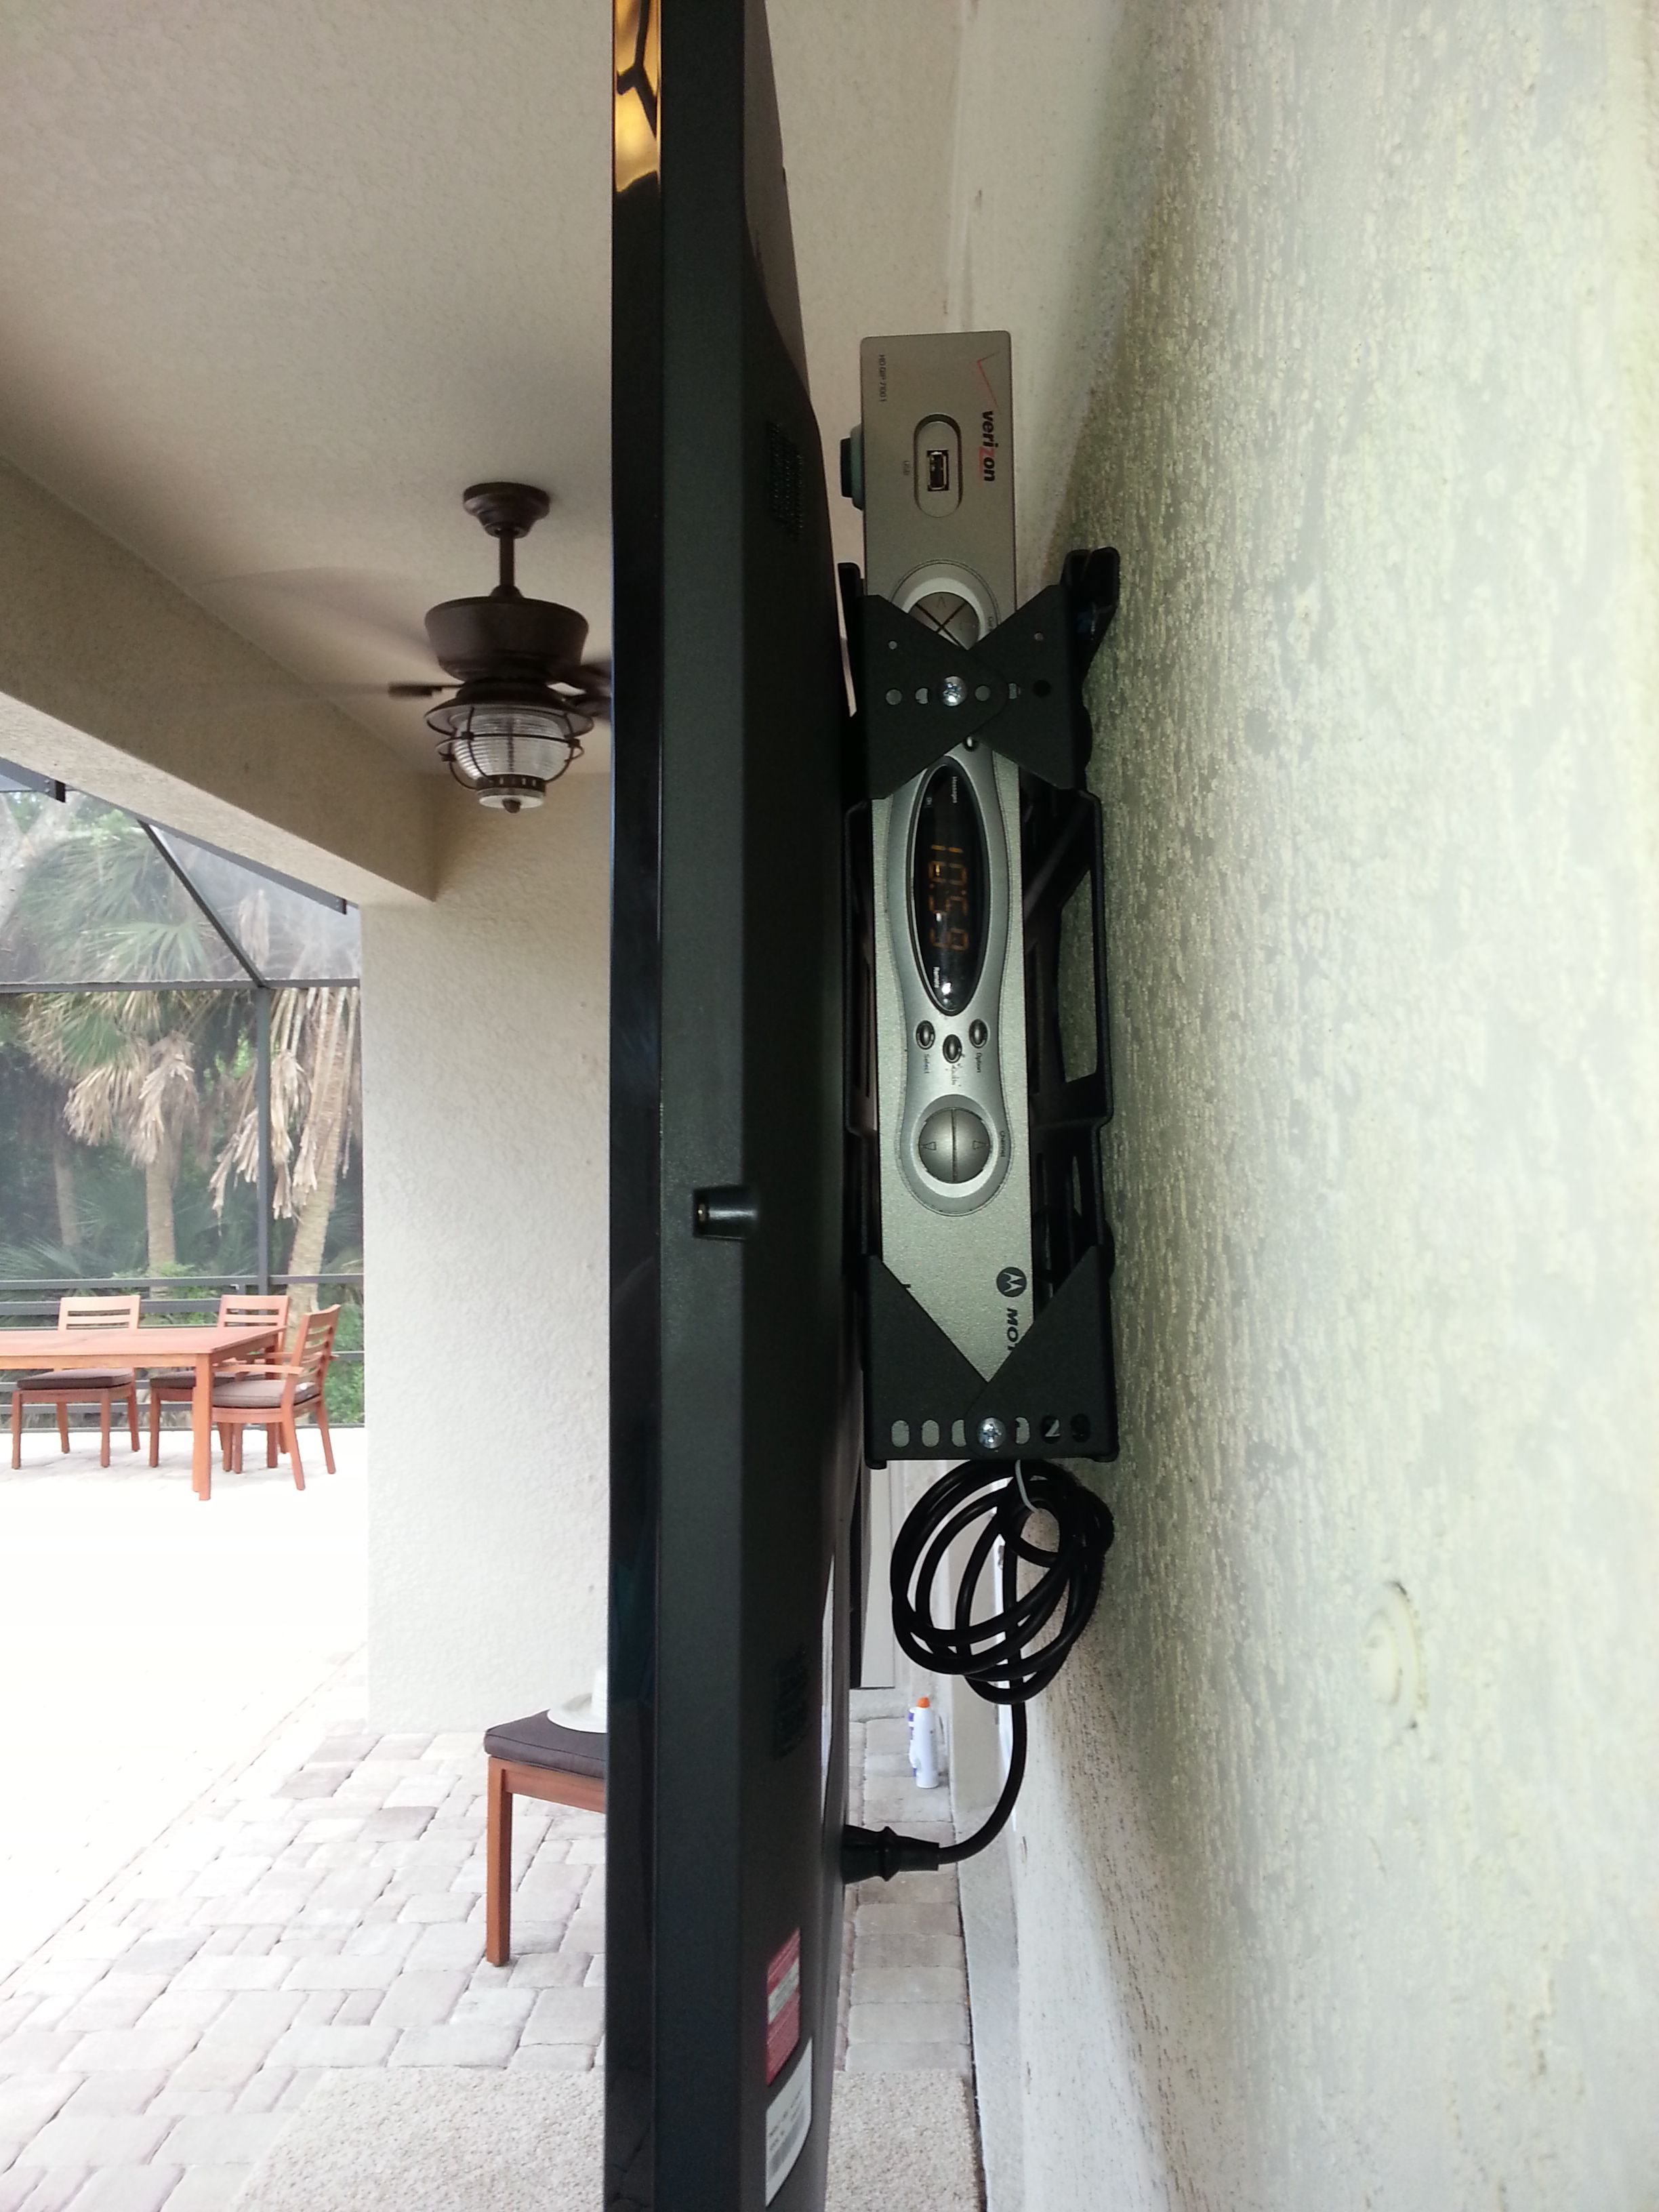 how to mount your tv outside and hide the cable box and wires behind rh pinterest com wiring behind wall mounted tv hide wires behind wall